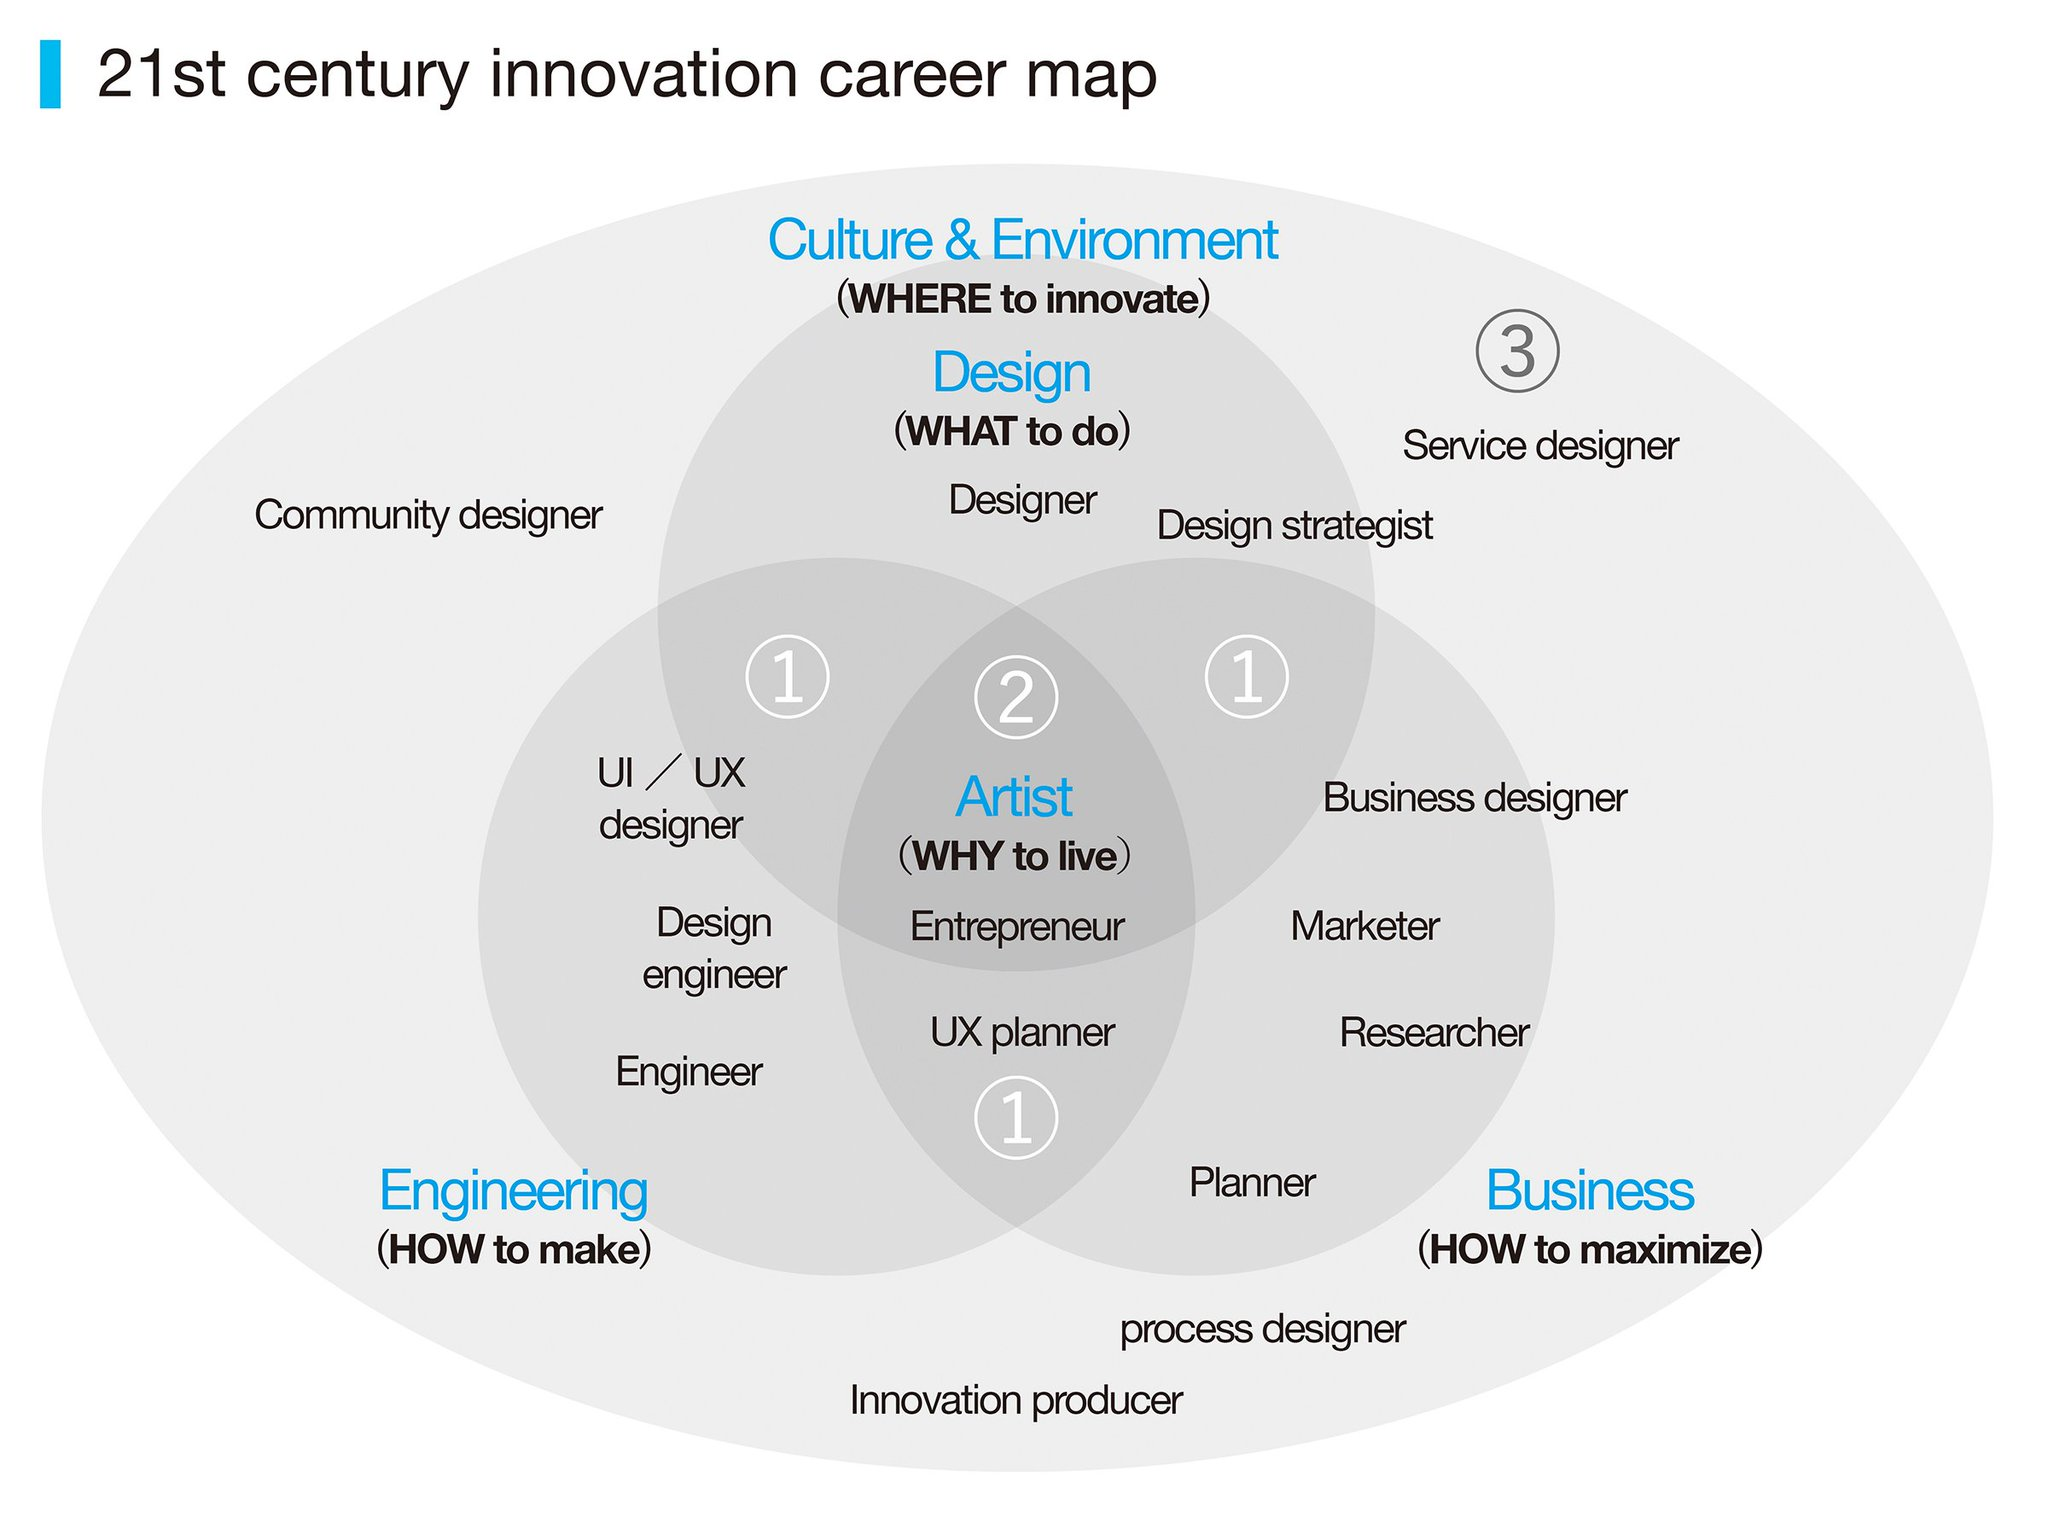 21 century innovation career map  There are several new jobs emerged in the intersection of design, engineering, and busuiness, where can you position your core strengths? https://t.co/idsRACCHiE